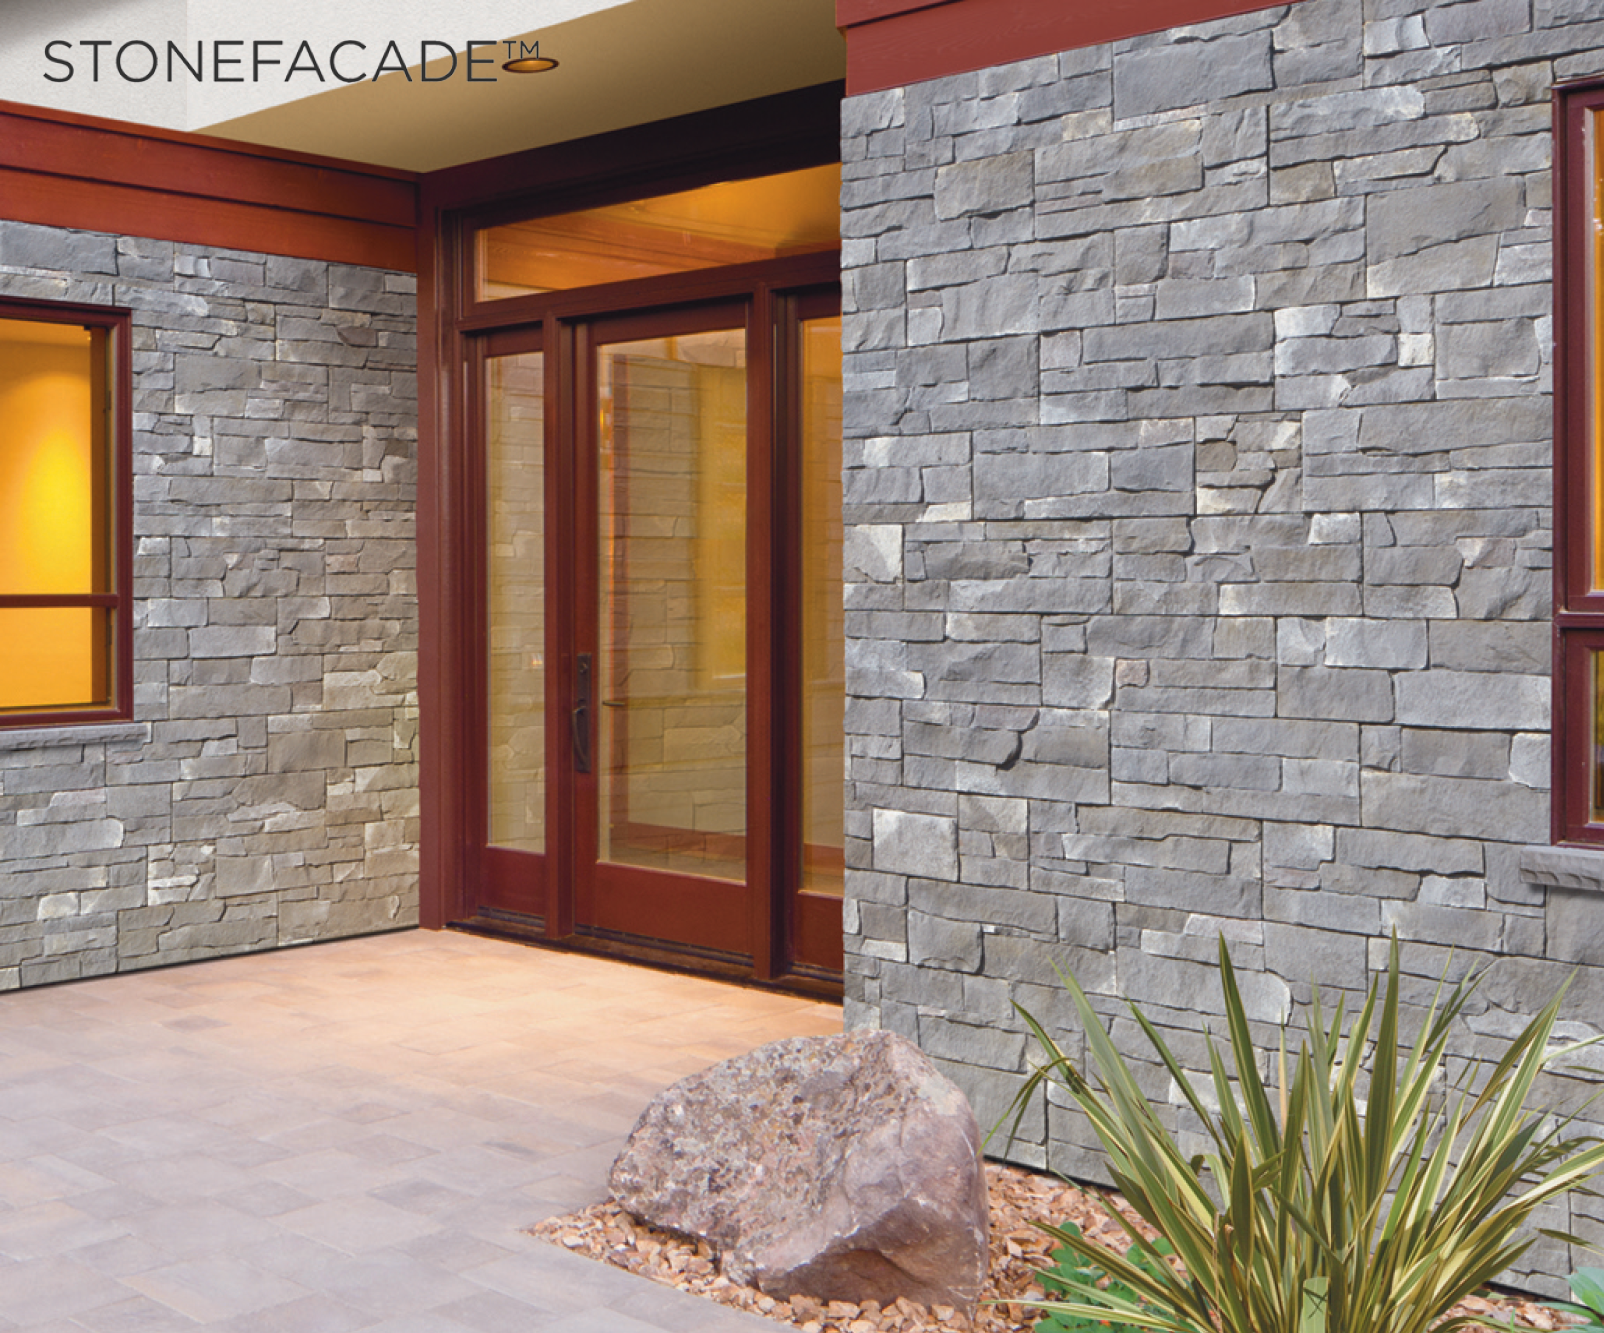 4 Reasons Why You Should Add Natural Stone to Your Home